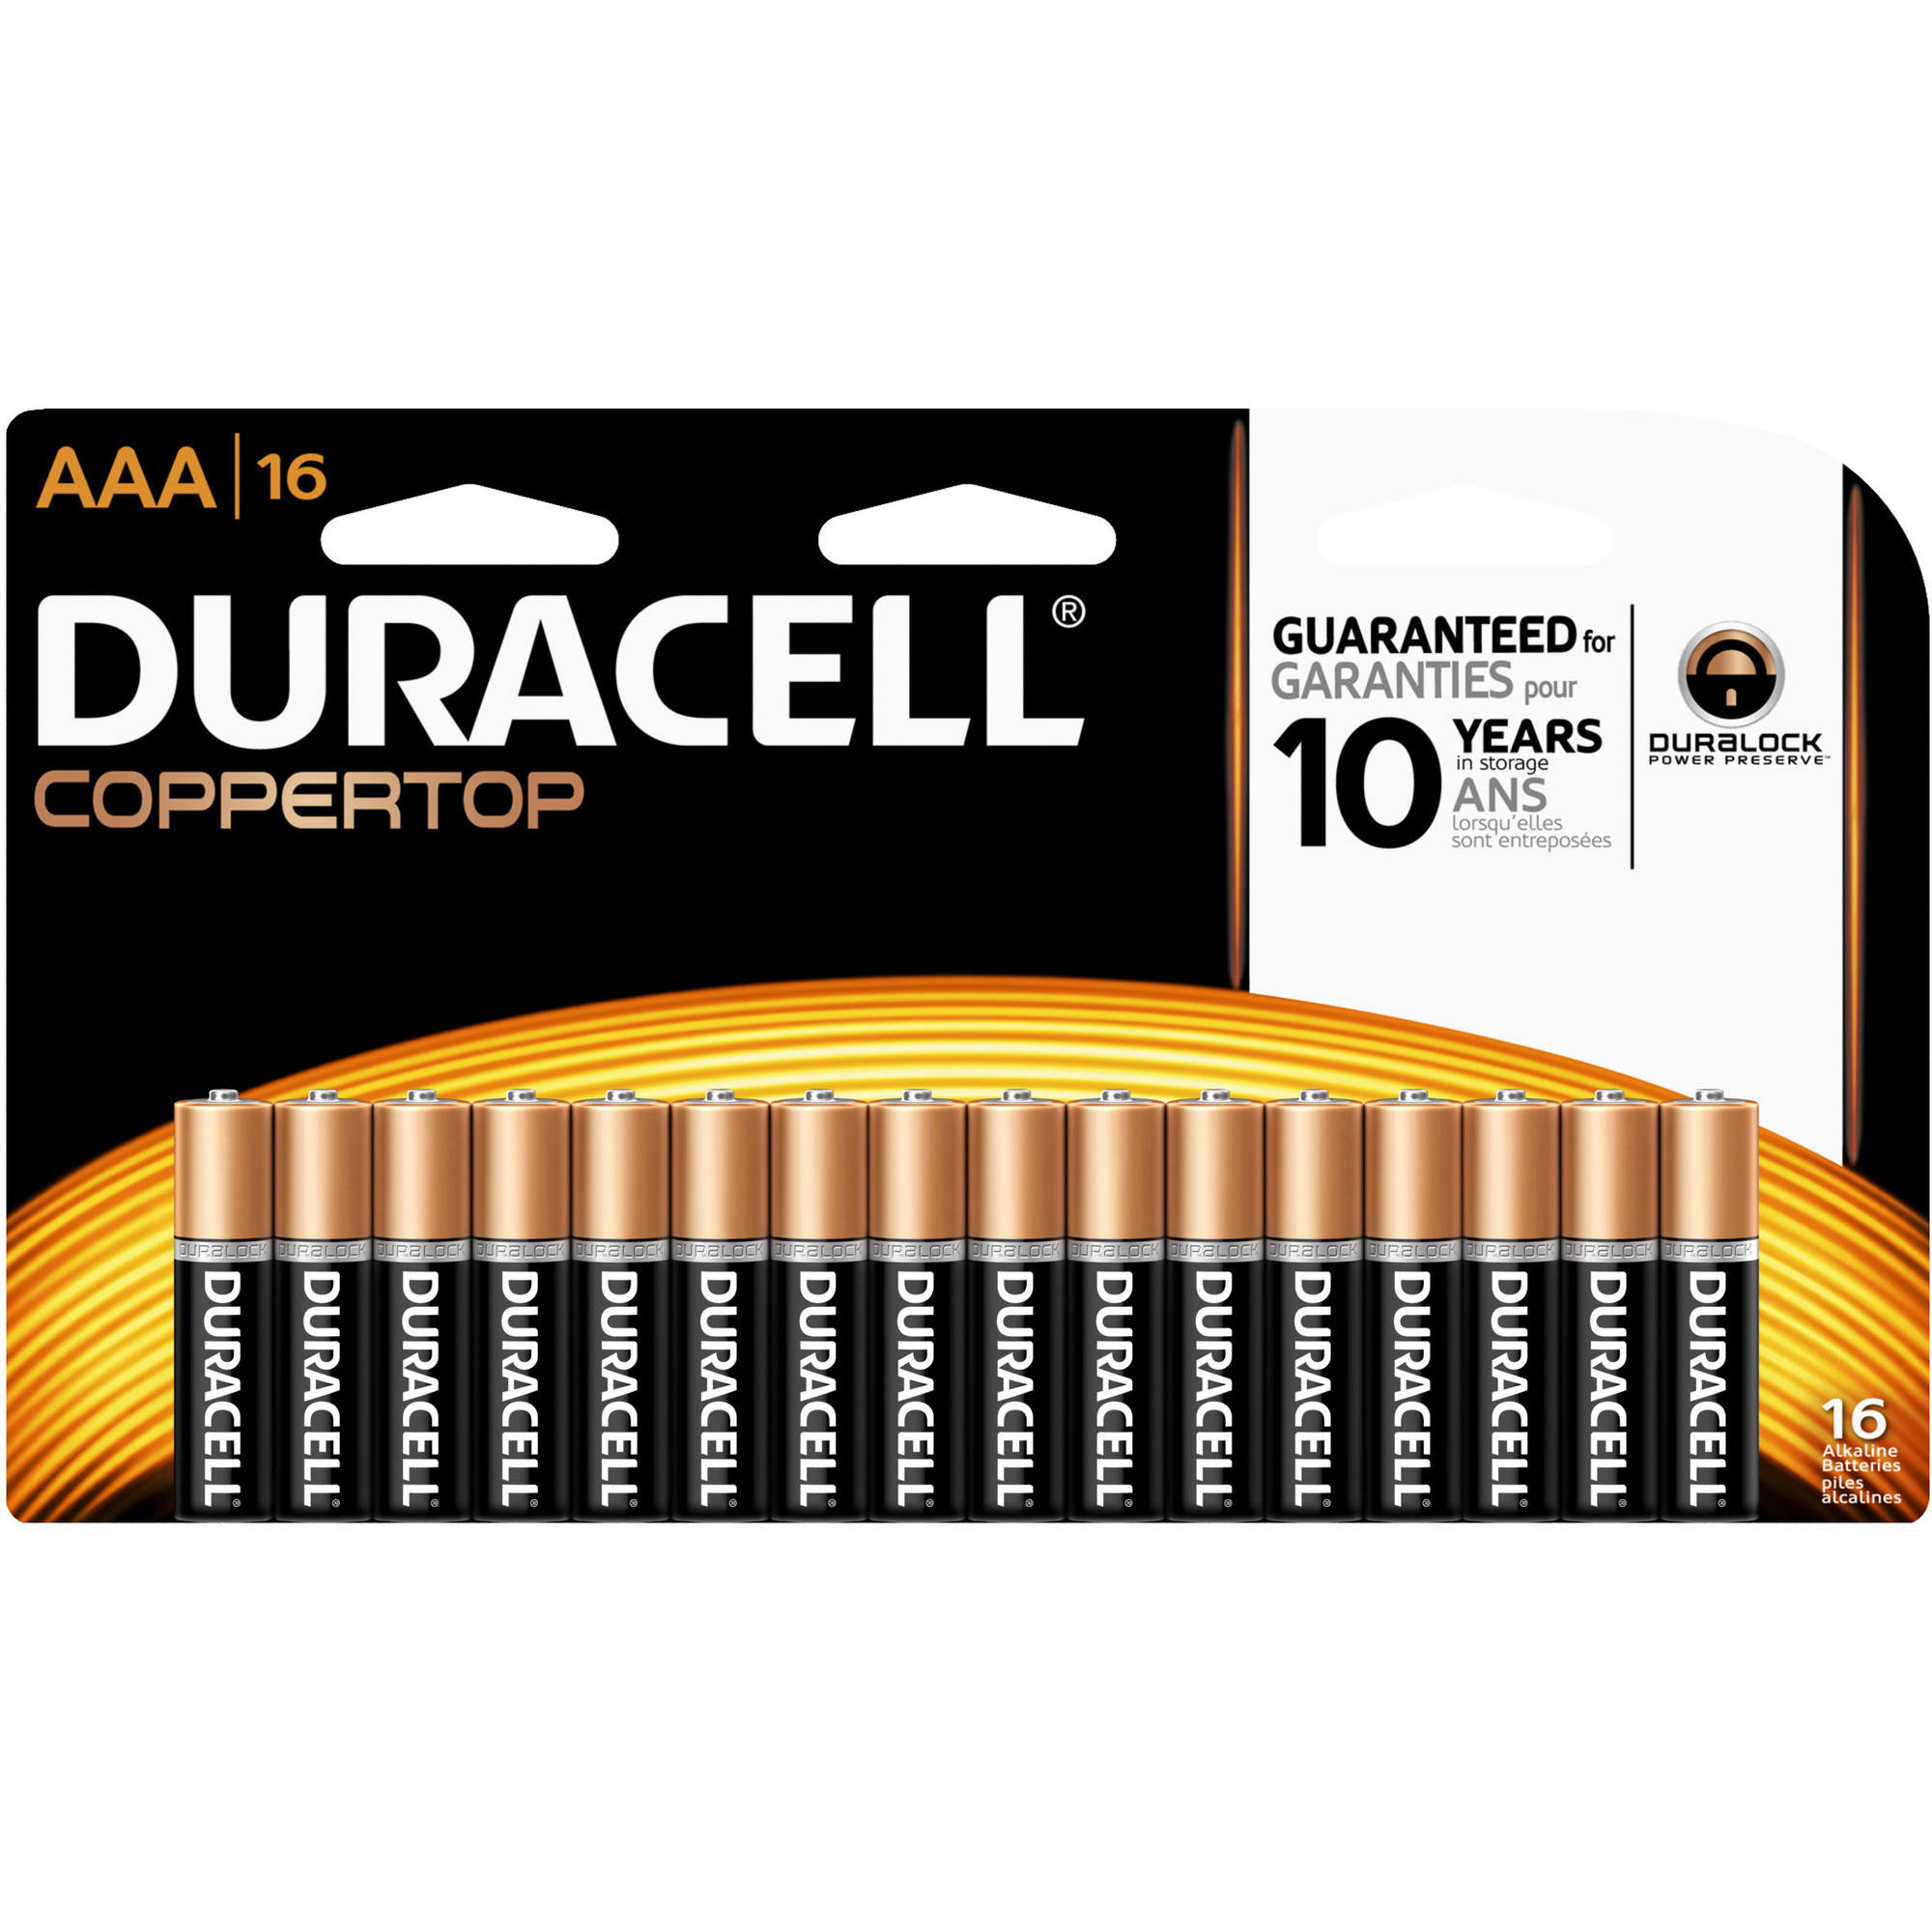 Duracell CopperTop AAA Alkaline Batteries, 16ct